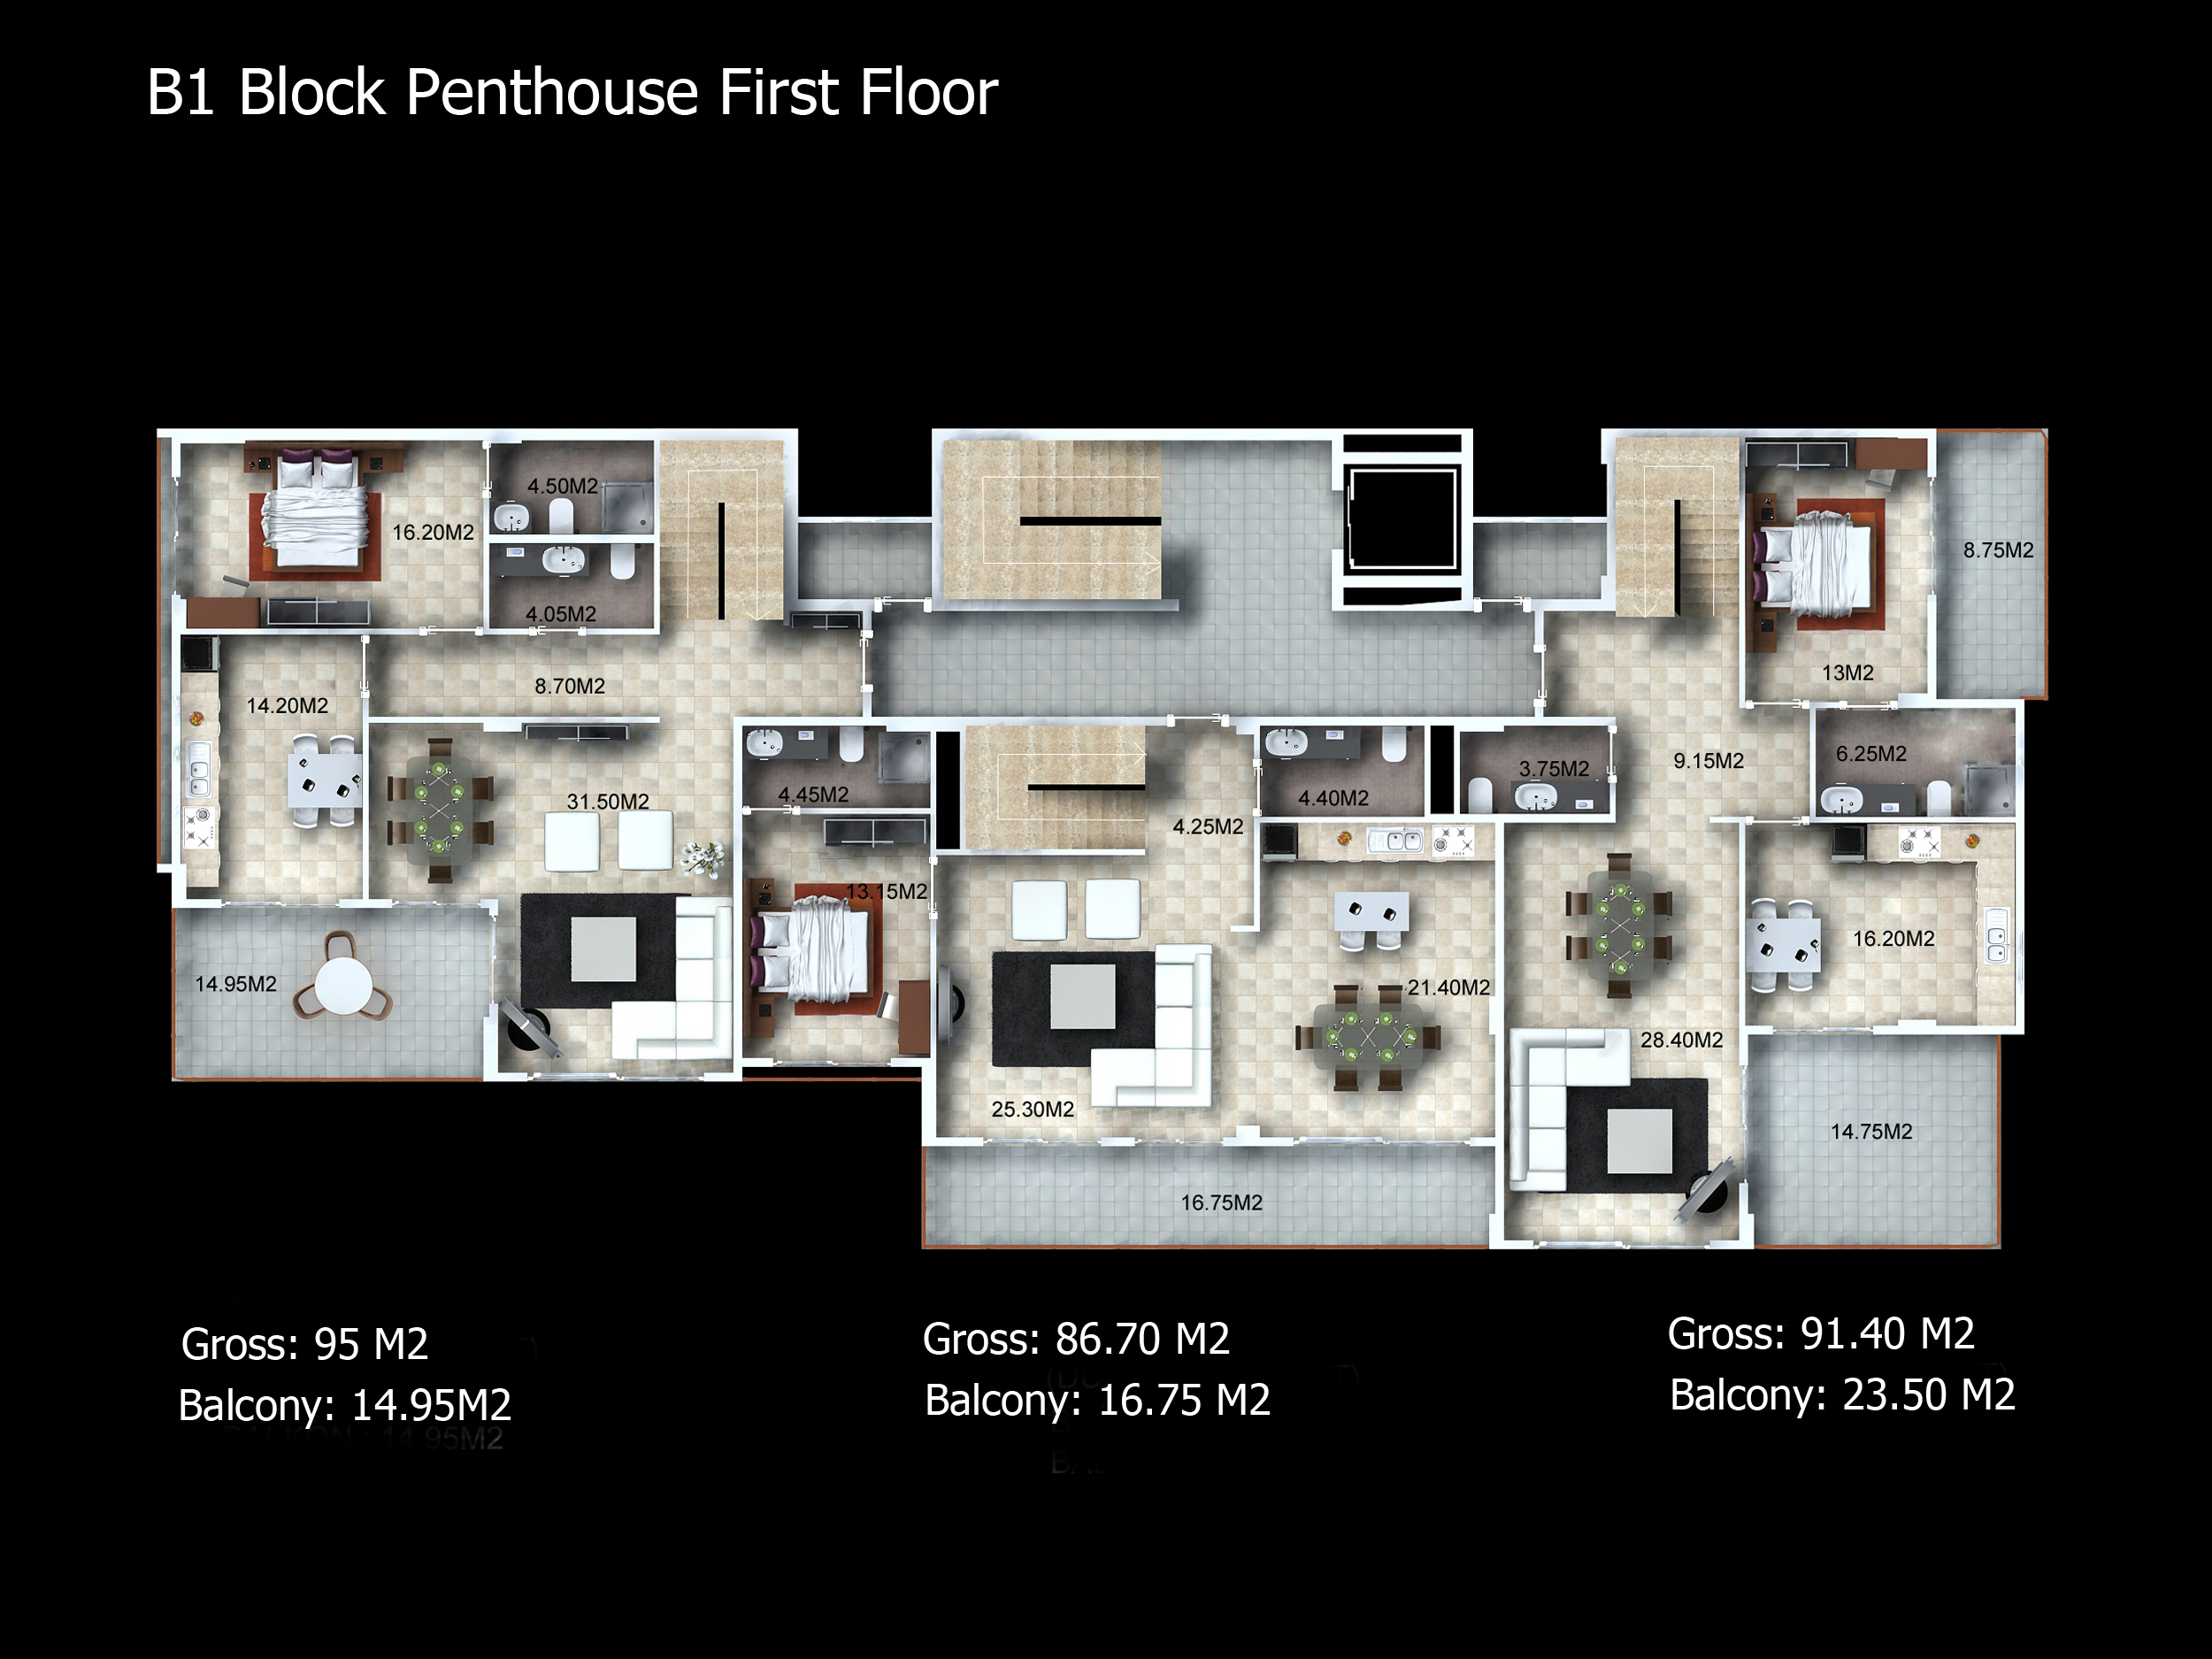 b1-block-penthouse-first-floor